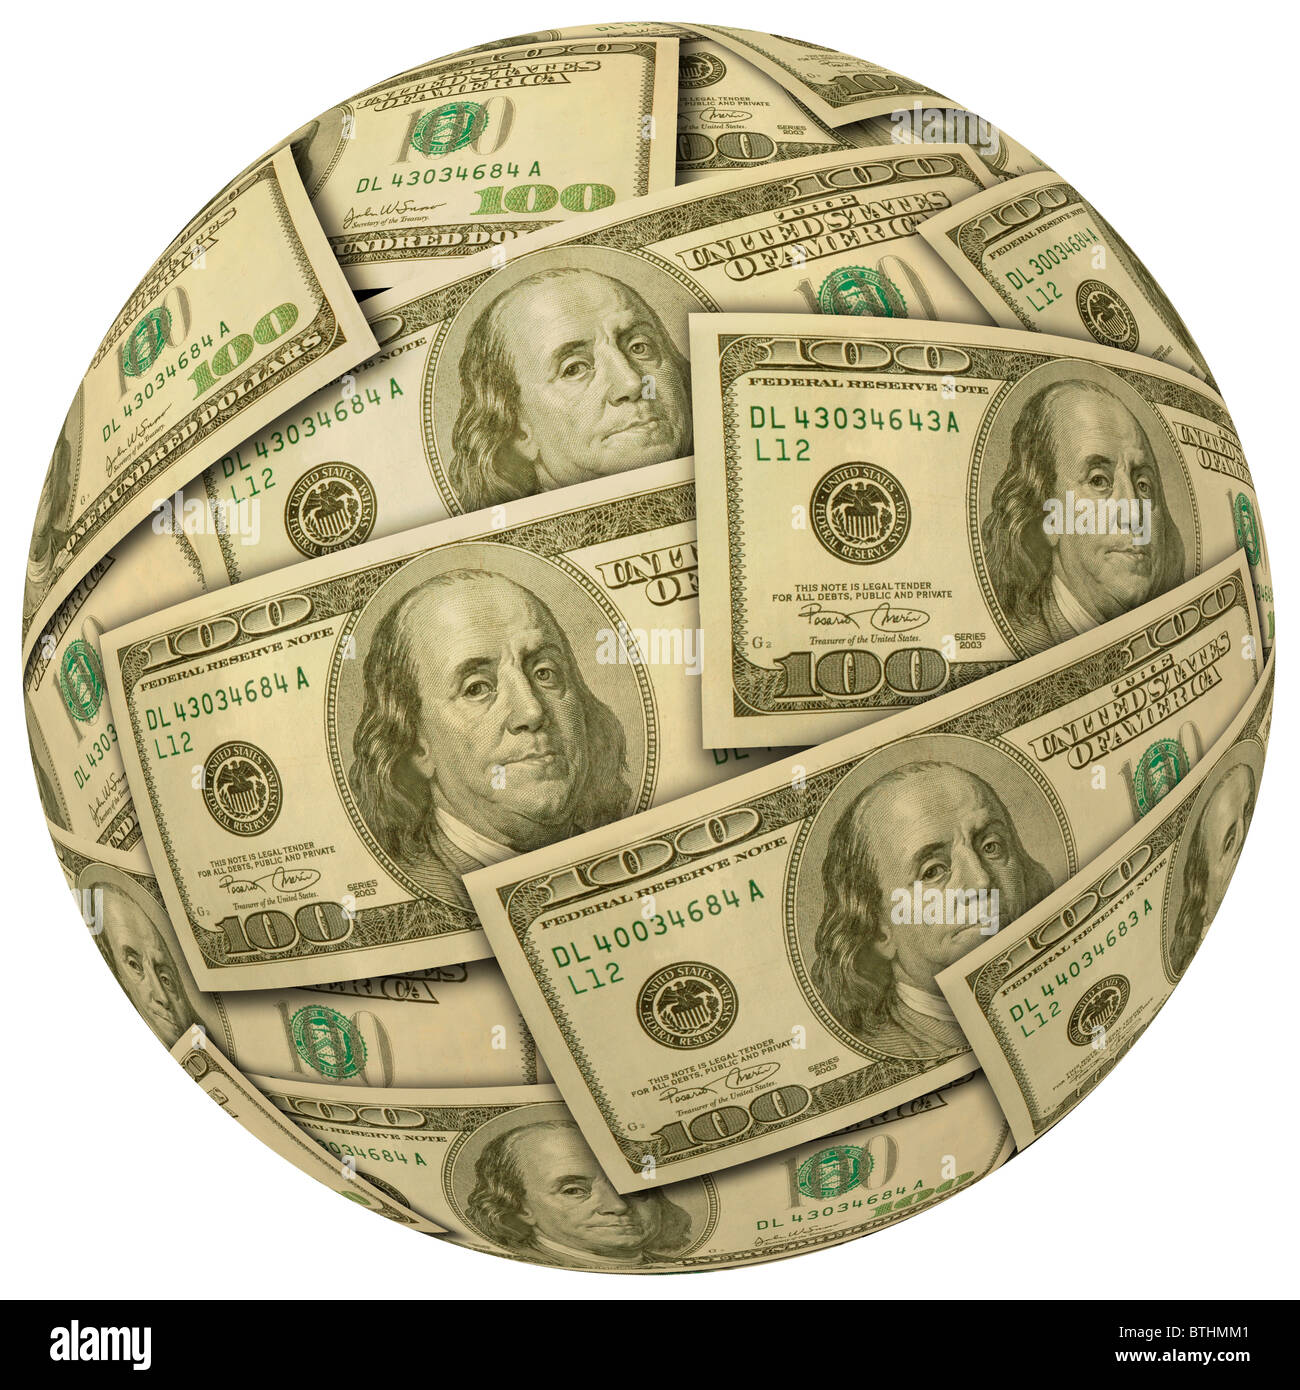 Cash Ball Or Sphere Of 100 Dollar Banknotes Bills Currency